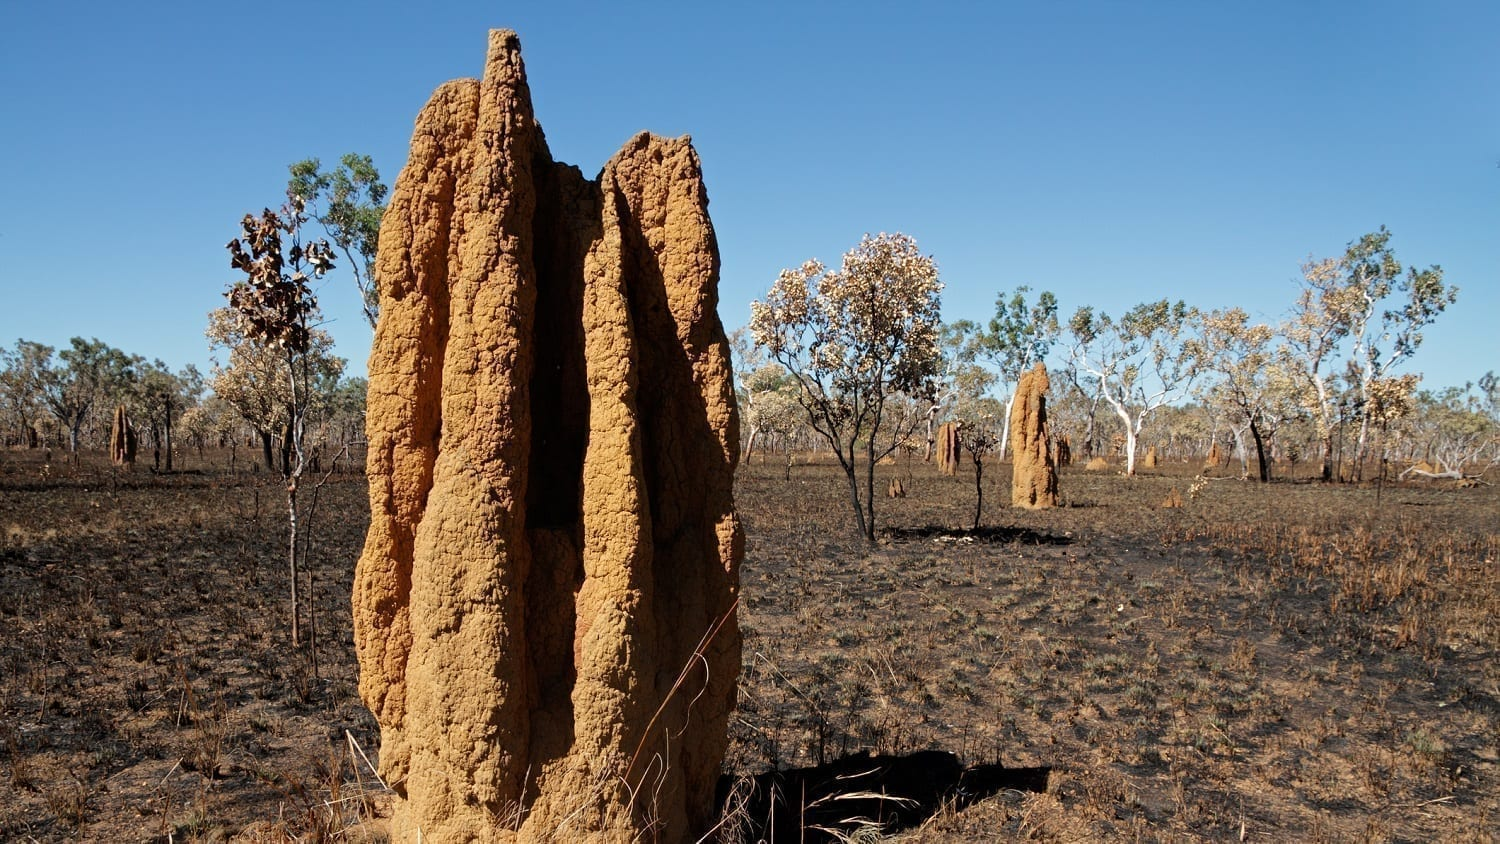 Cathedral Termite mount, Australia: Photo 15273994 © Ecophoto | Dreamstime.com